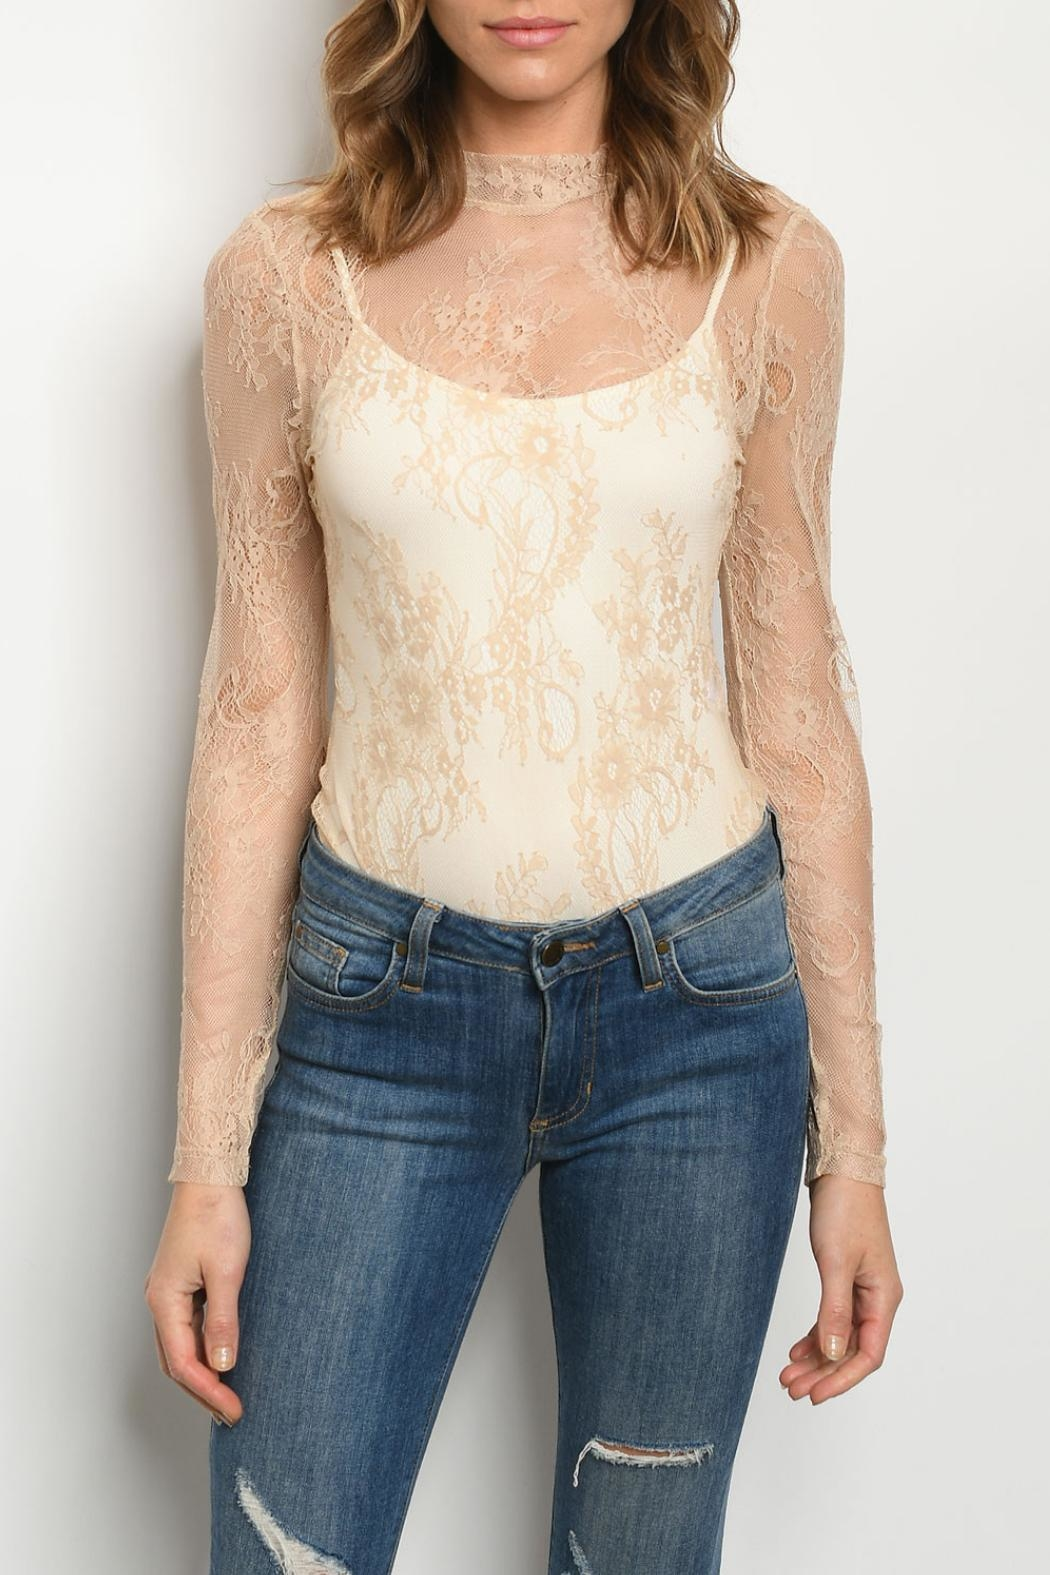 Celebrity Pink  Sheer Lace Bodysuit - Main Image